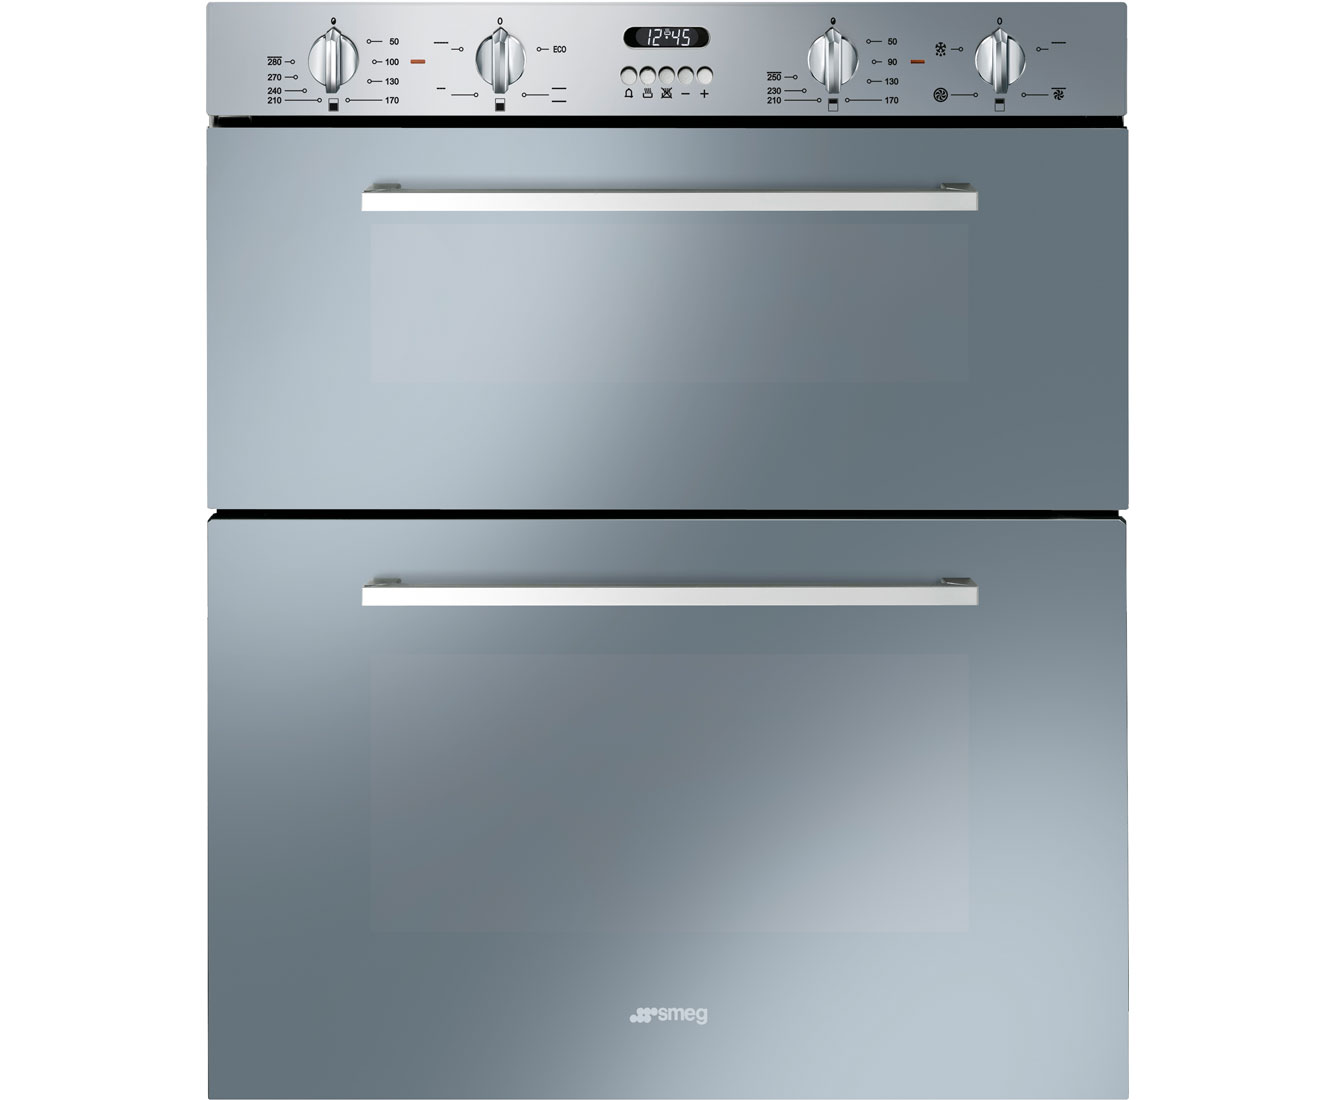 Smeg Cucina Dusf44x Built Under Double Oven Stainless Steel